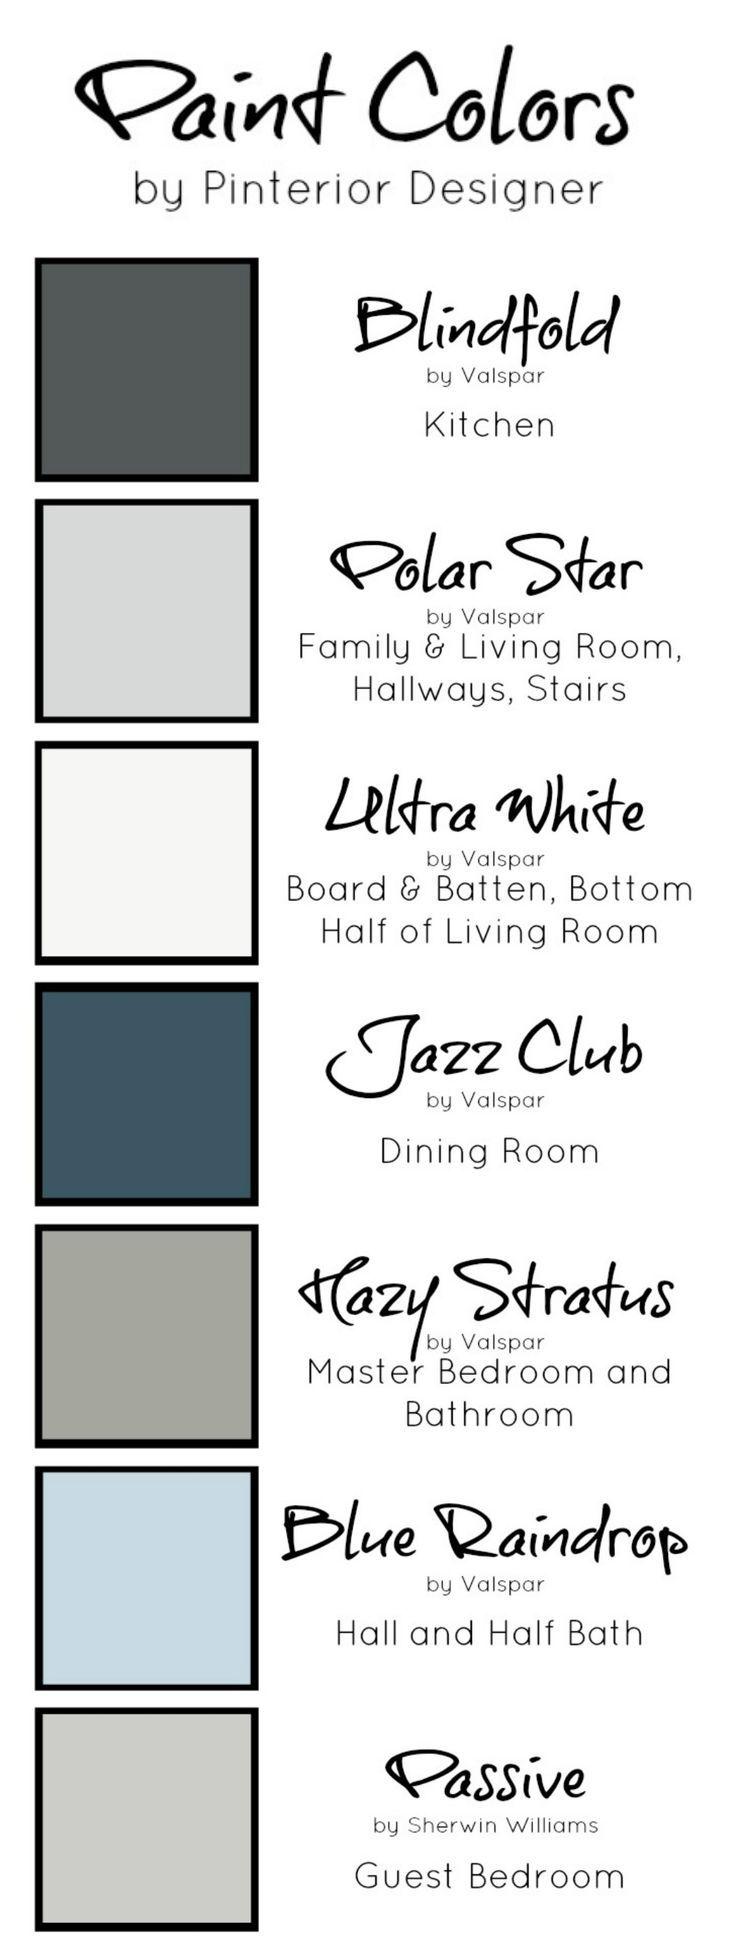 valspar color combinations | Love these colors! Perfect mix of neutral grays and blues for a cool ...